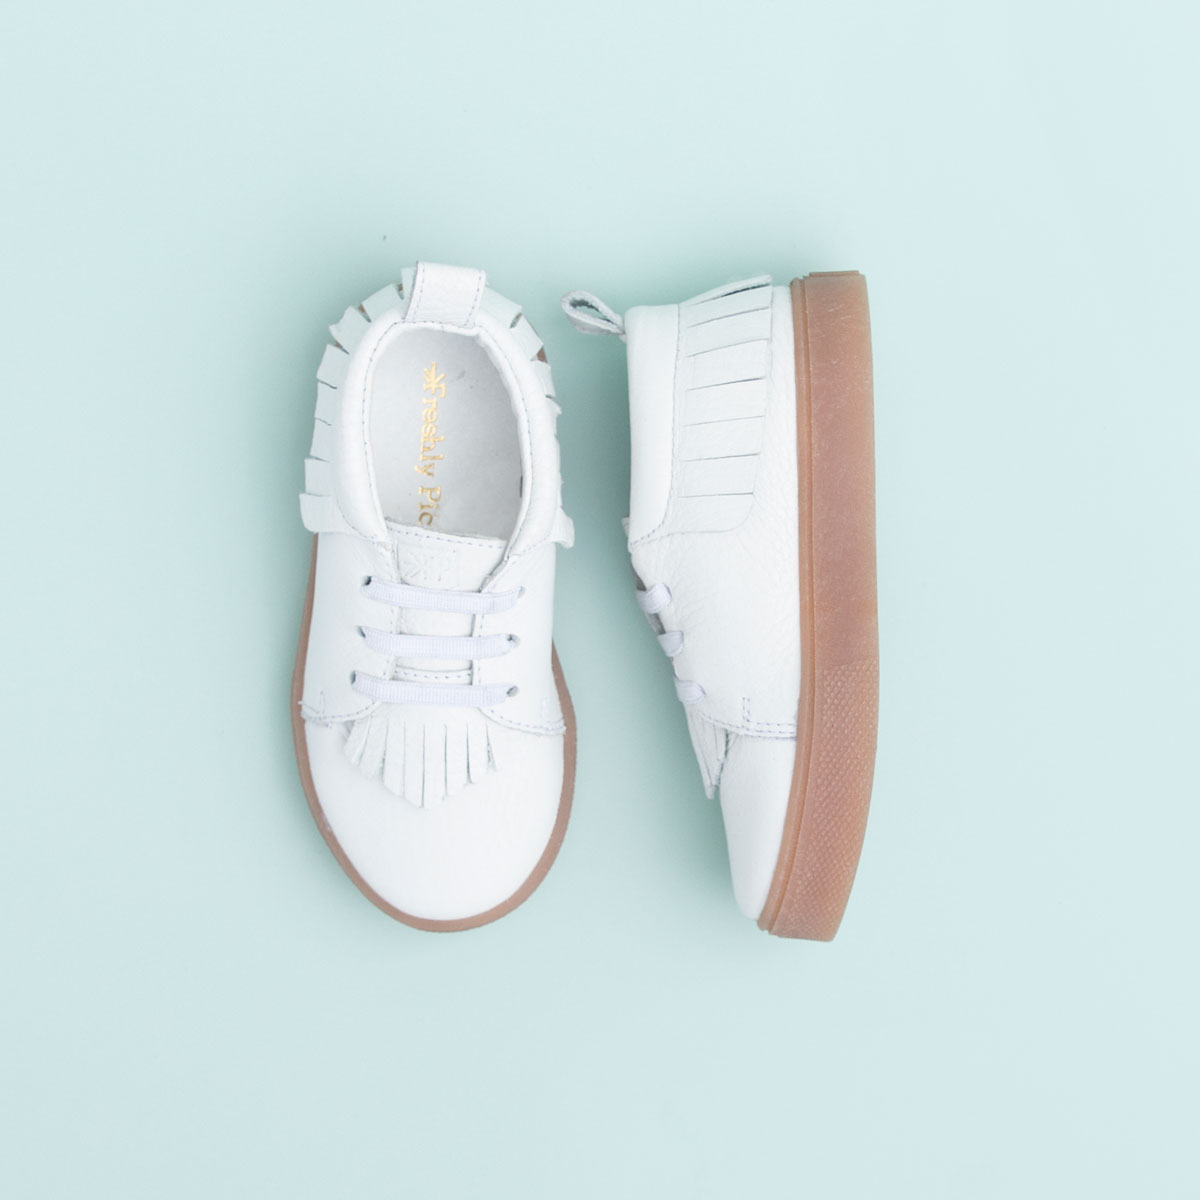 White Freshly Picked Sneakers